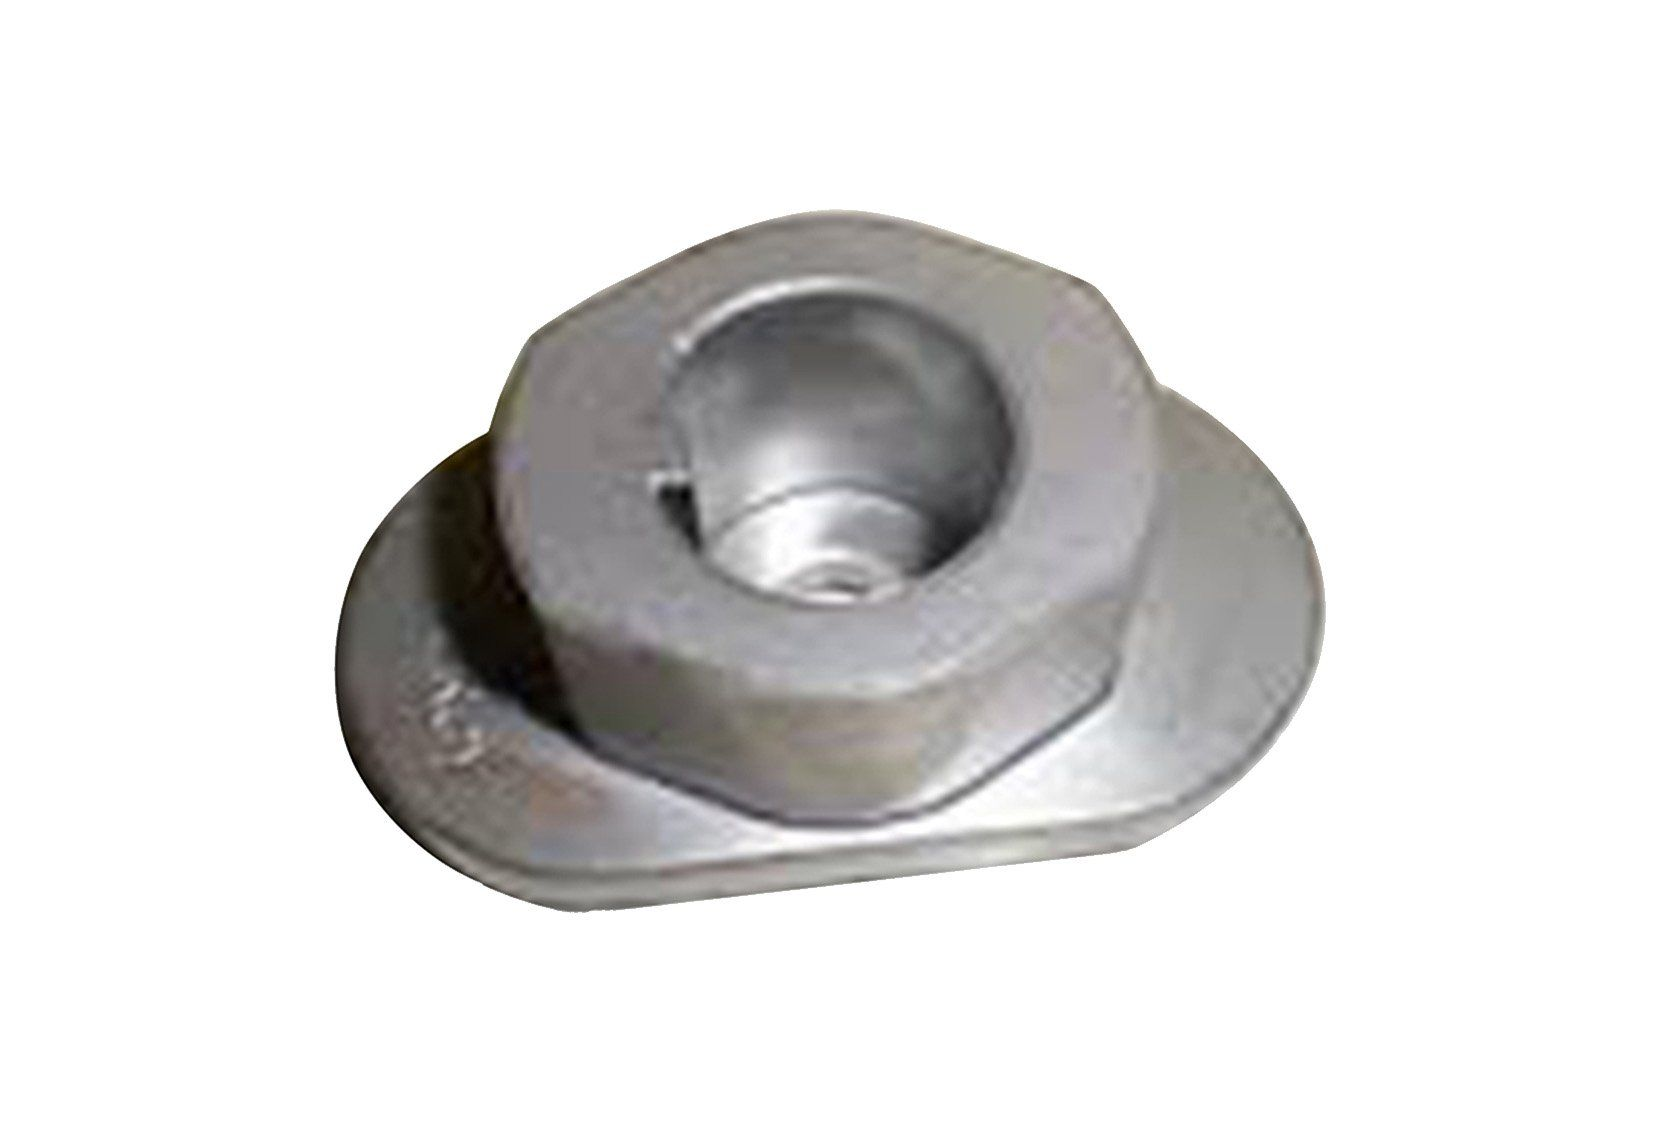 Husqvarna 532418373 Blade Adapter Replacement For Walkbehind Lawn Mowers For More Information Visit Image Li Lawn Mower Blades Landscaping Tools Husqvarna